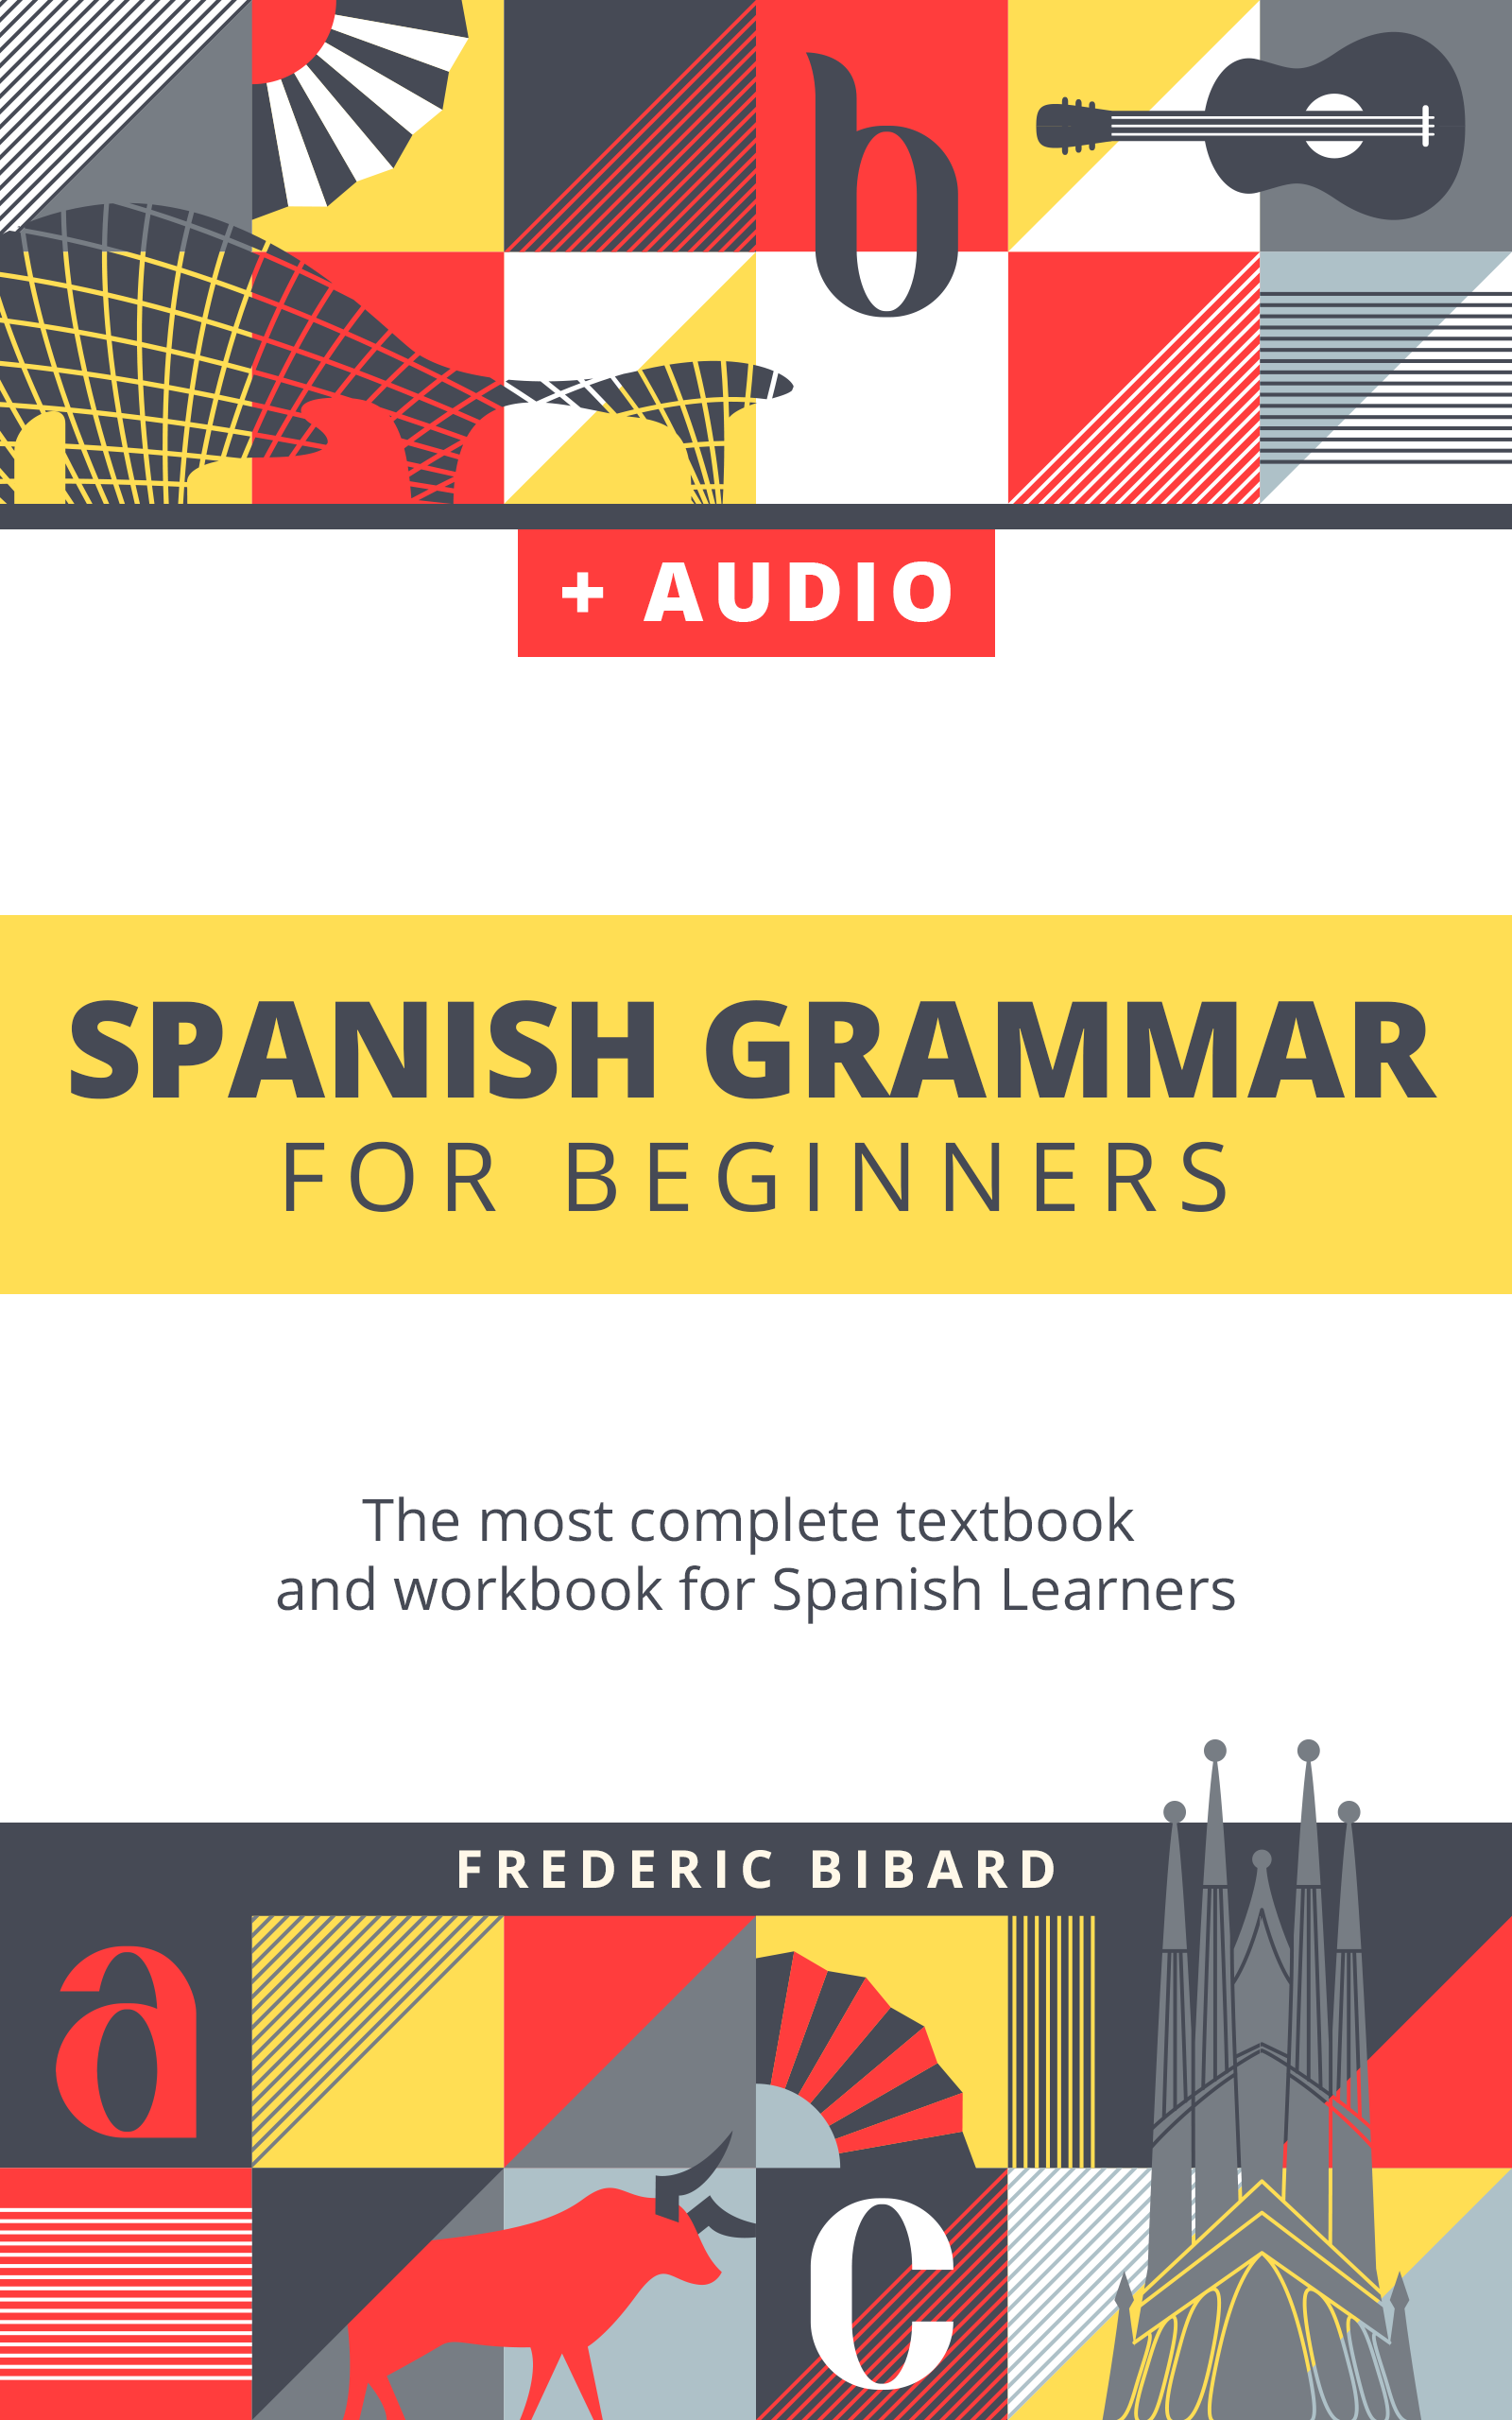 The Complete Spanish Grammar Course for Beginners - My